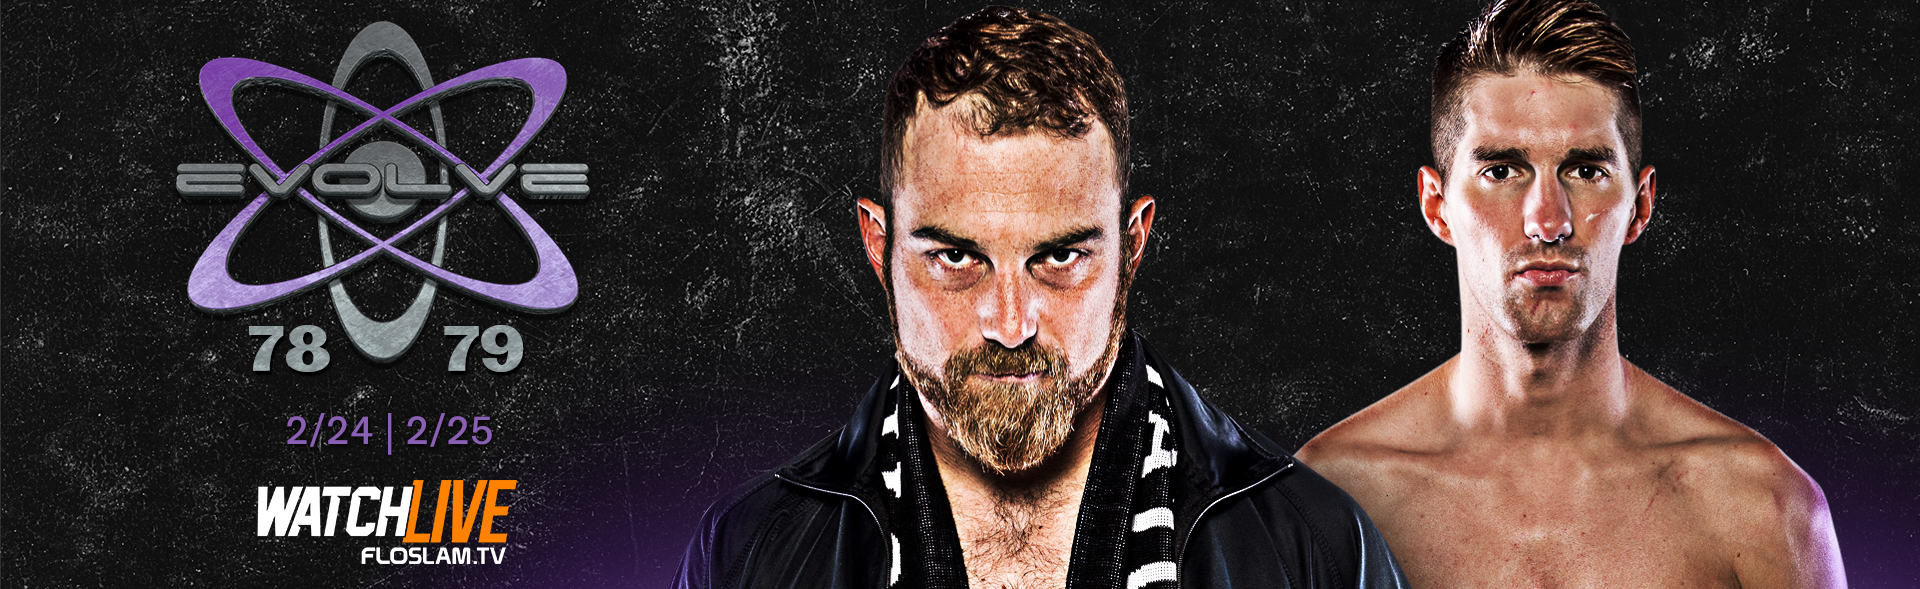 Evolve78and79-1920x589